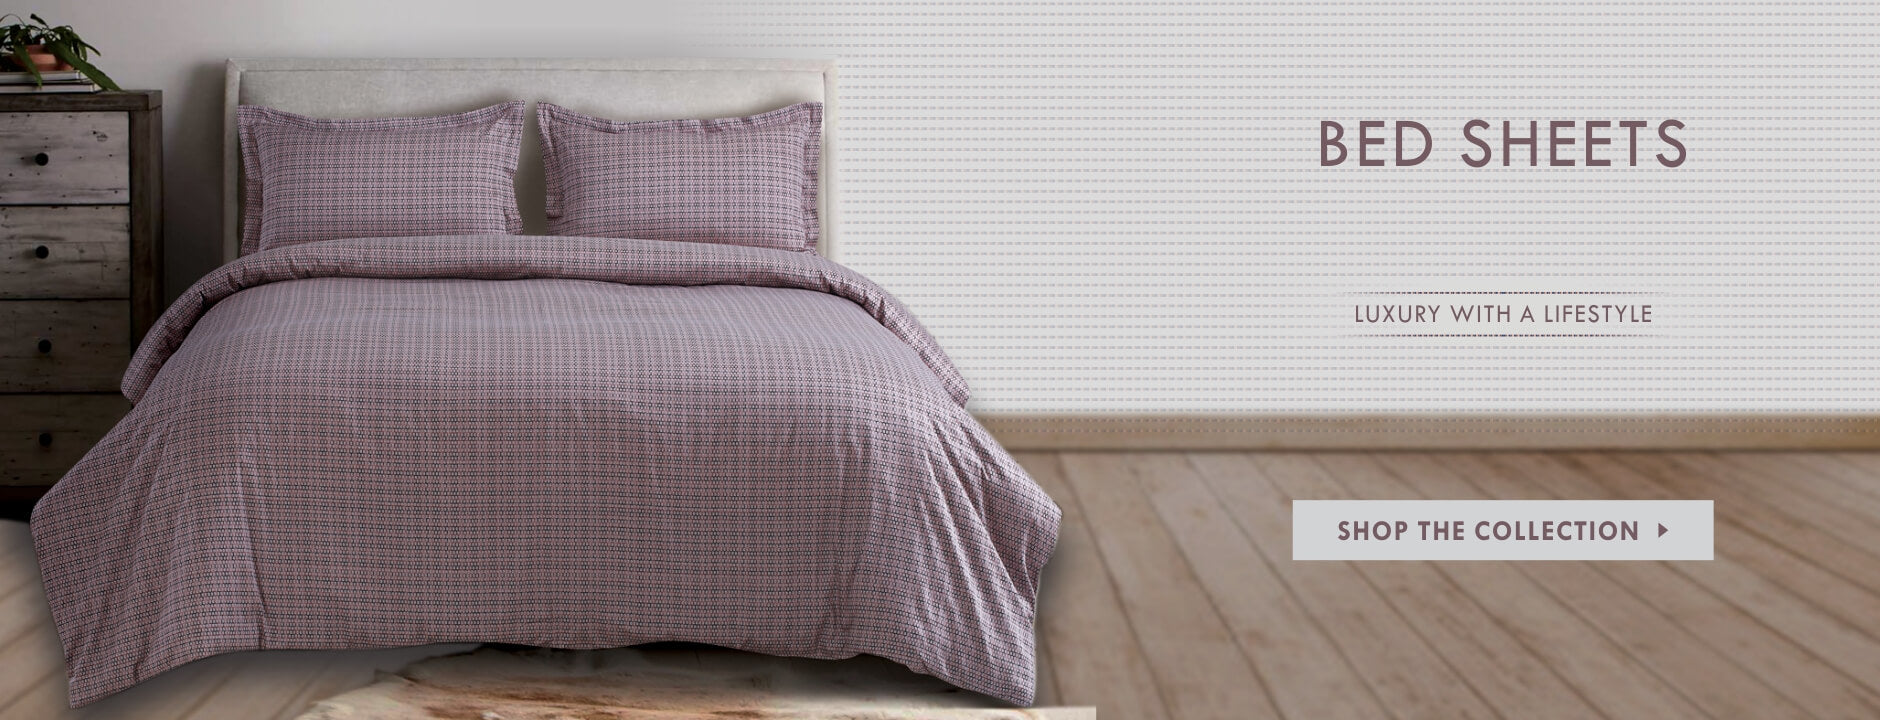 Luxury Bedding U0026 Home Decor Online Shopping U2013 Malako India